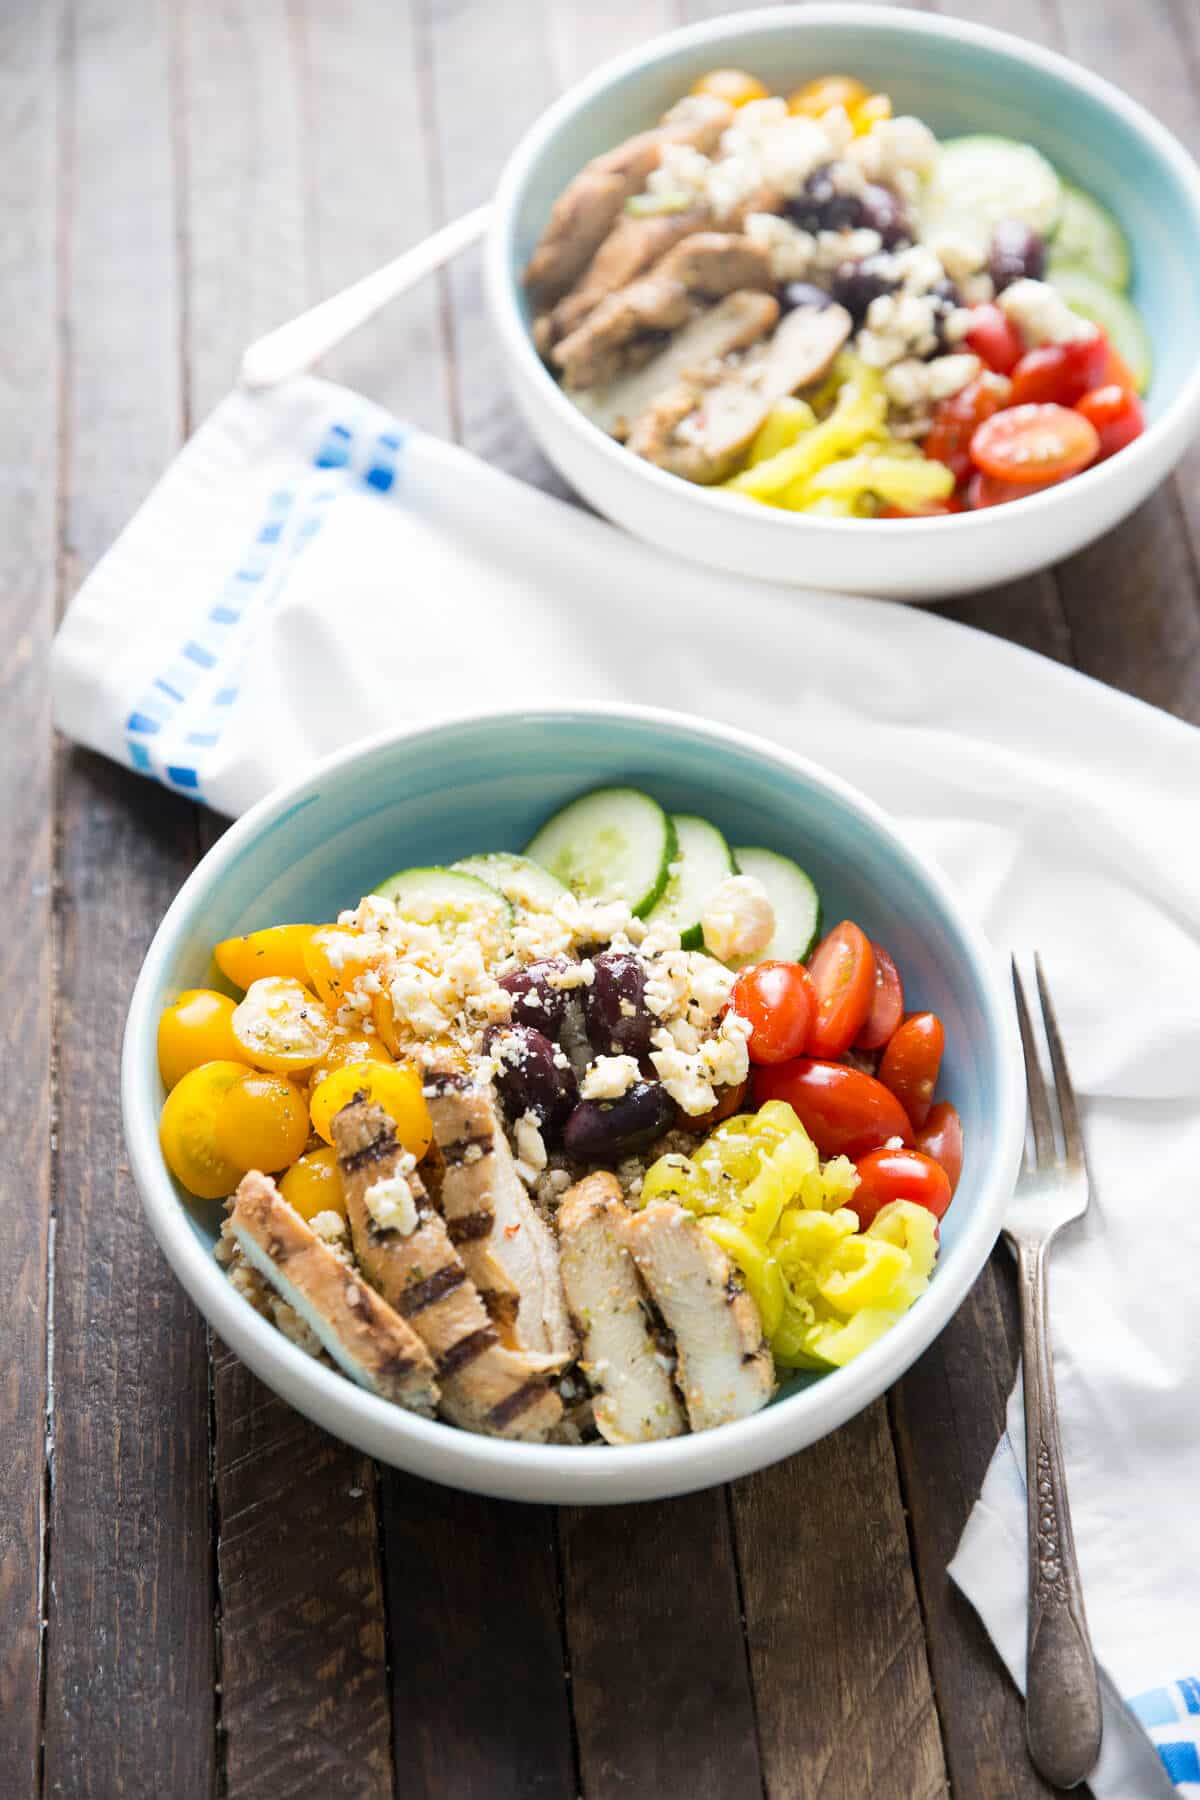 This Mediterranean Chicken bowl is both healthy and delicious! This light meal is quick and easy too! lemonsforlulu.com